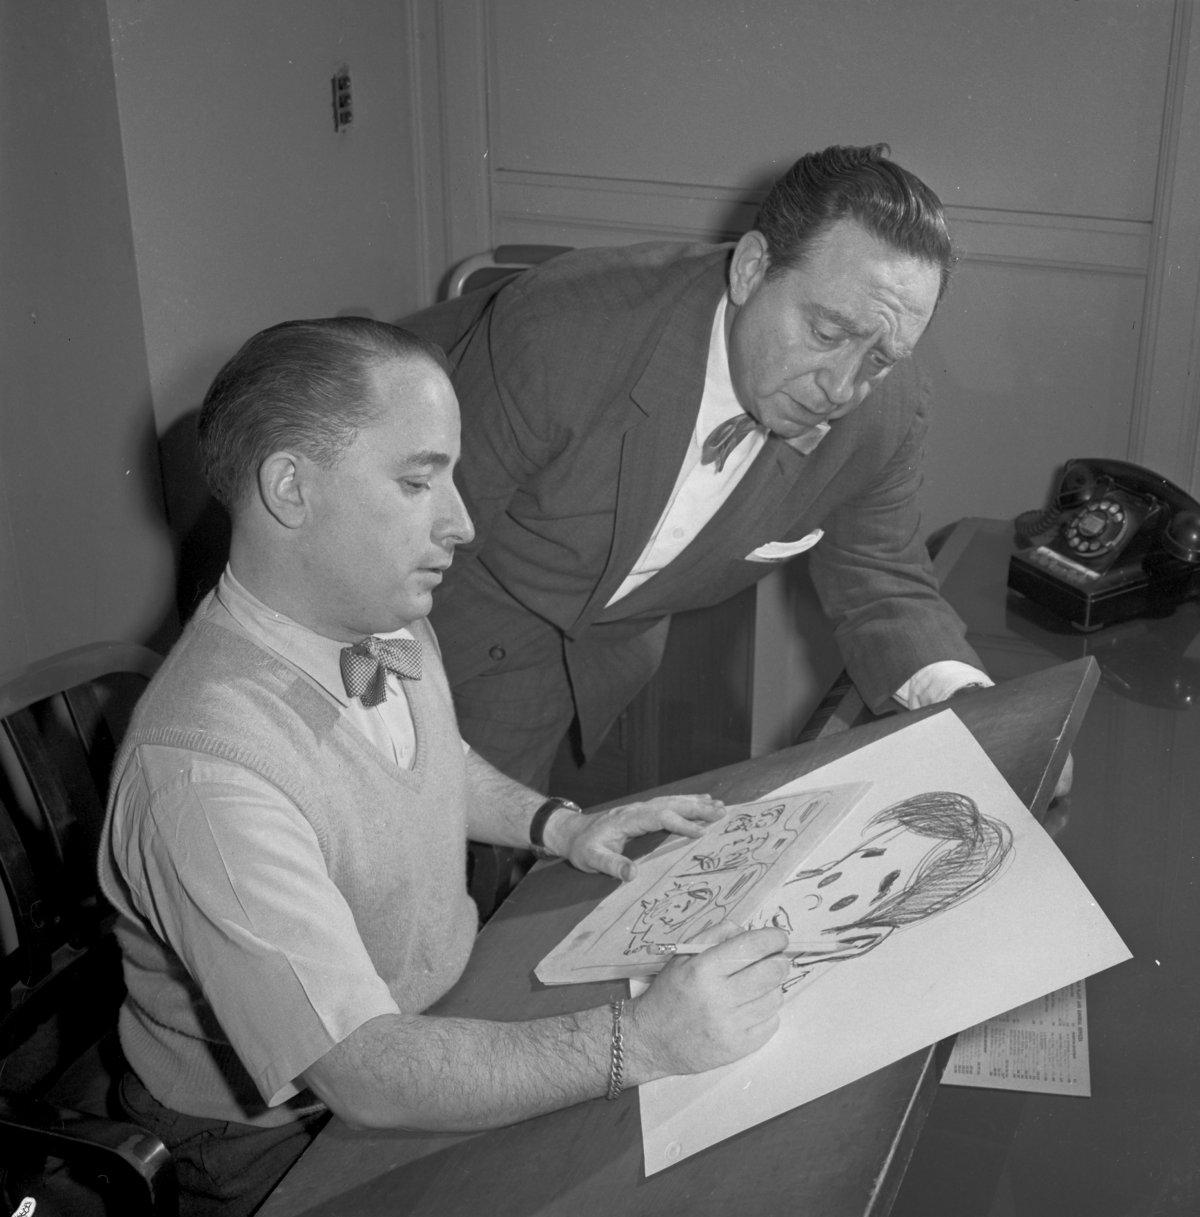 Irwin Hasen (seated at his drawing table) and Gus Edson (standing) discuss Dondi.